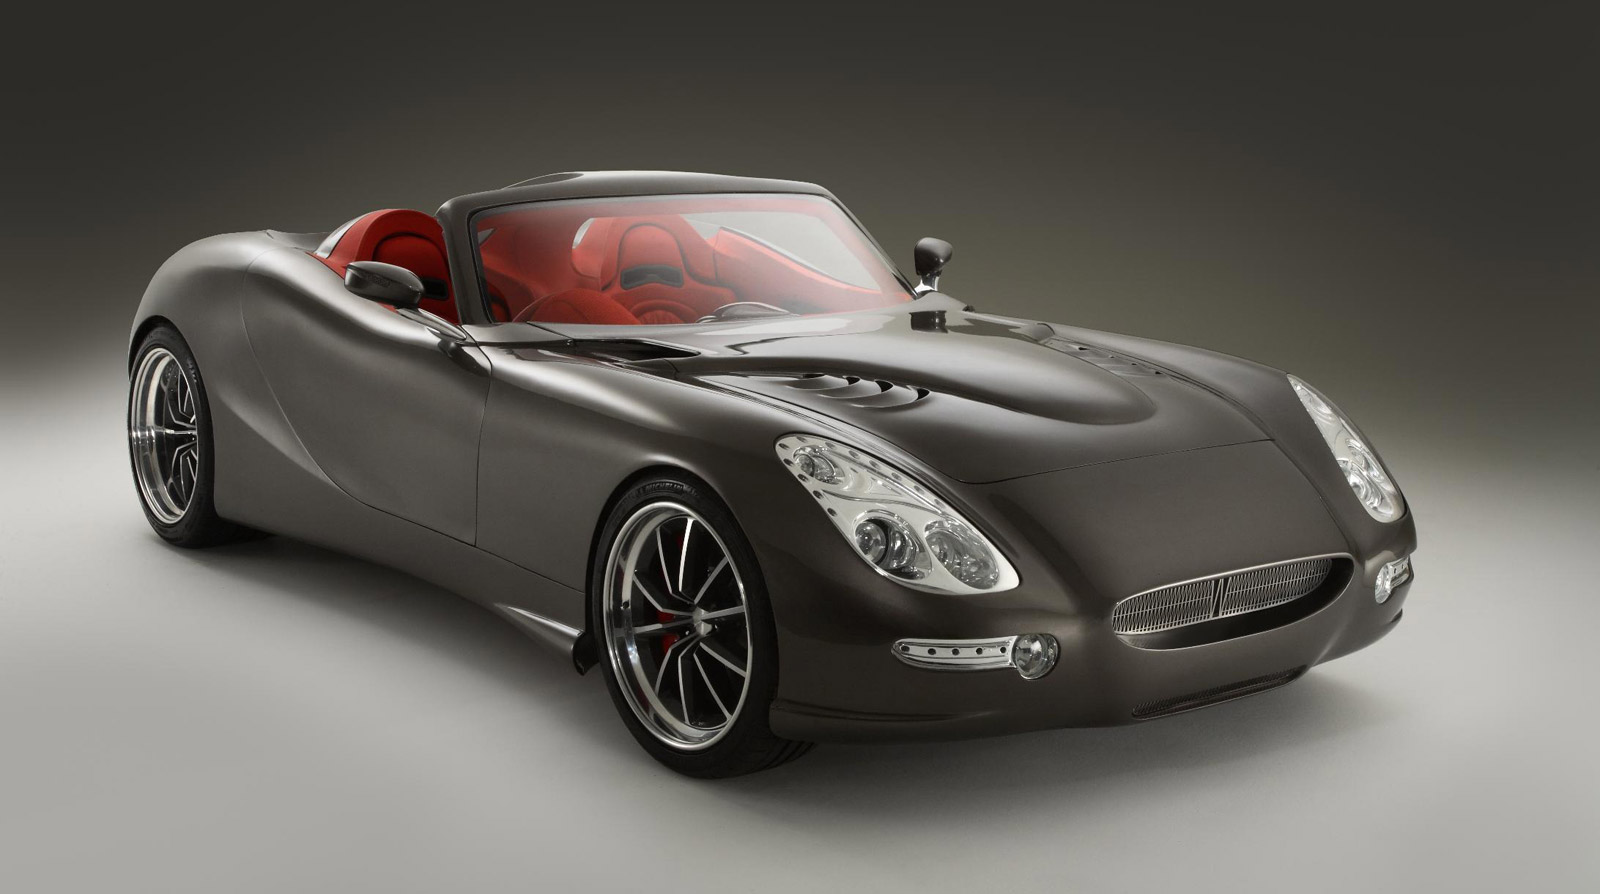 Trident Iceni The 200 Mph 57 Mpg Diesel Supercar